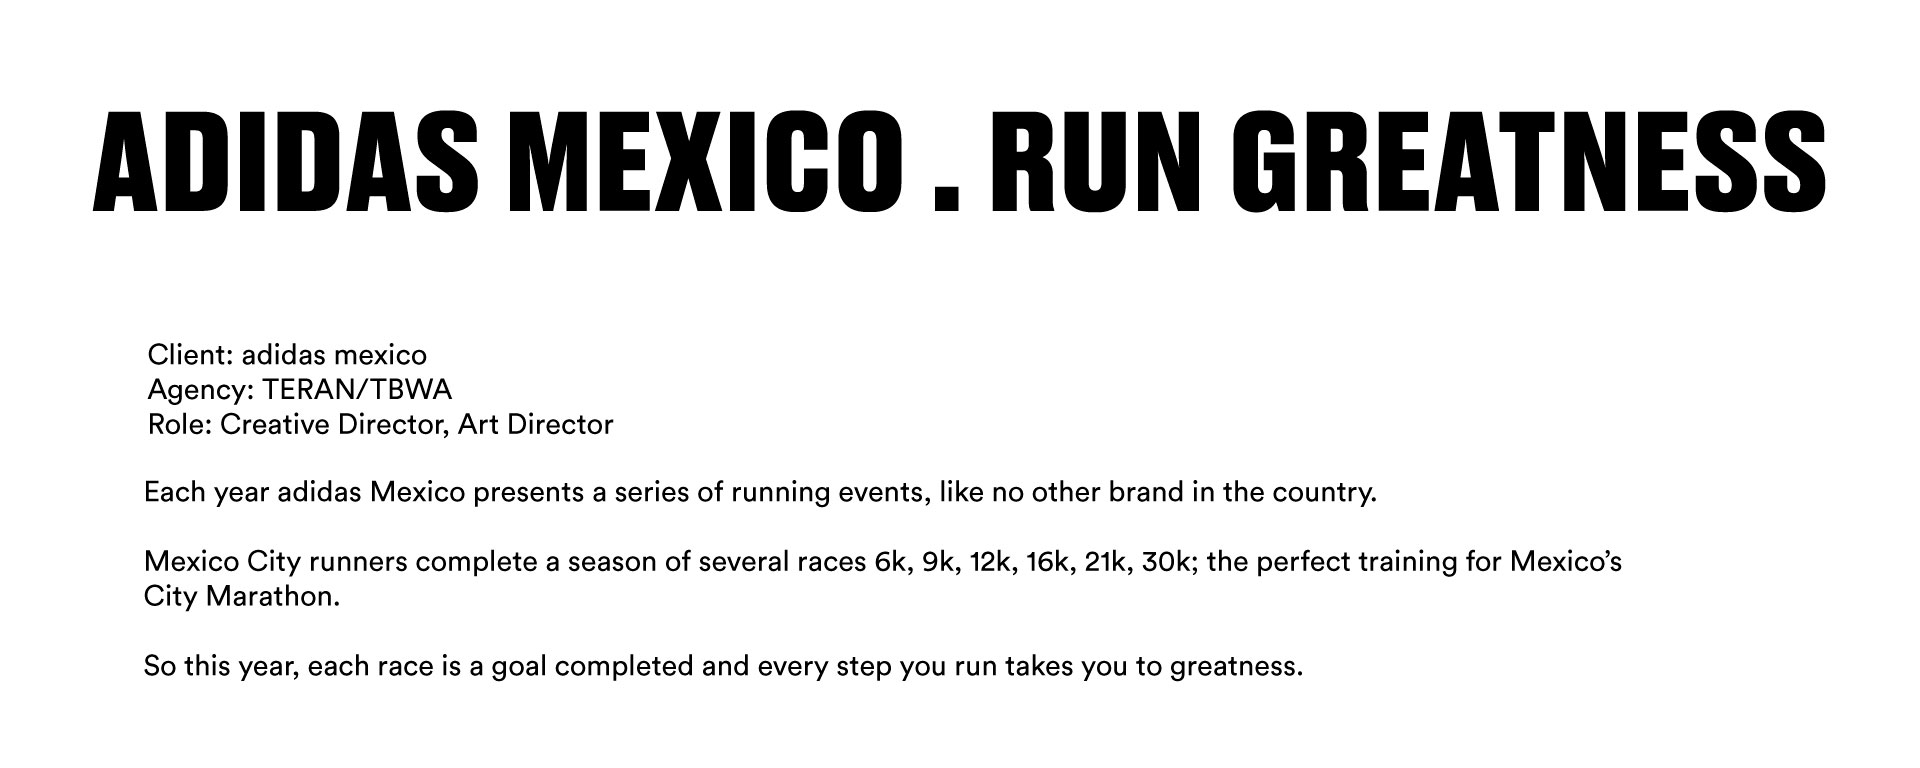 RUN-GREATNESS-PROJECT-MATERIAL-1